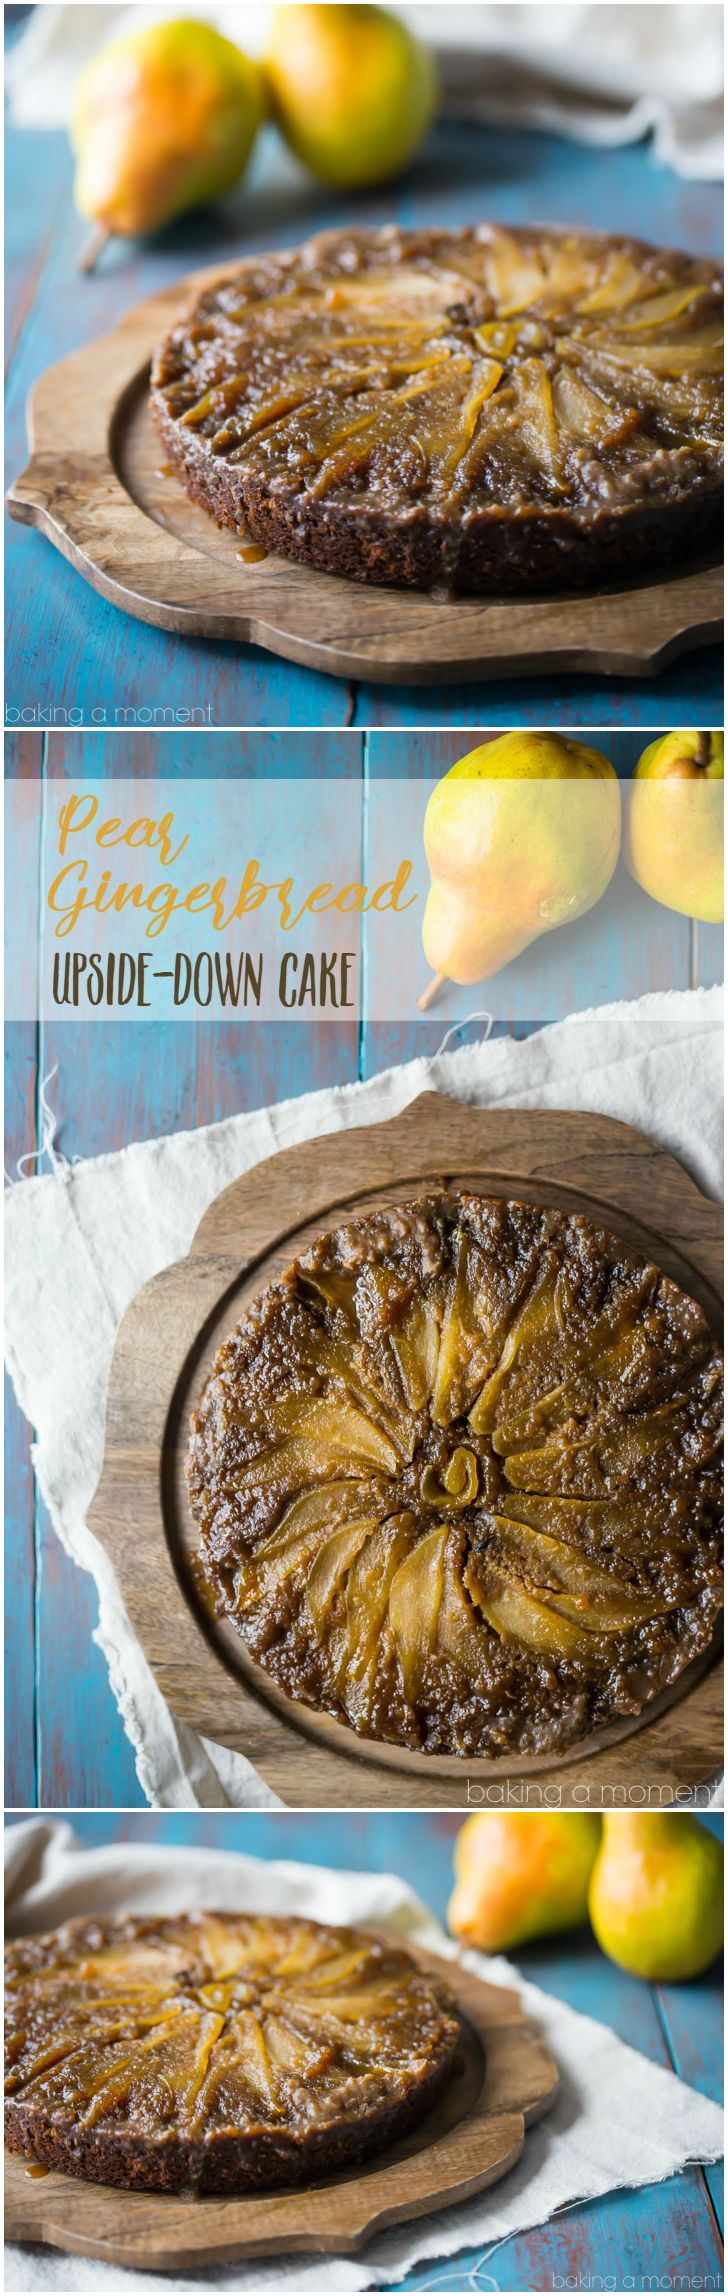 Pear Gingerbread Upside Down Cake- oh my! So many gorgeous flavors going on here. I really loved the way the sweet, brown-sugary pears balanced out the spiciness of the gingerbread. A winner of a winter dessert, for sure! @Southern Living